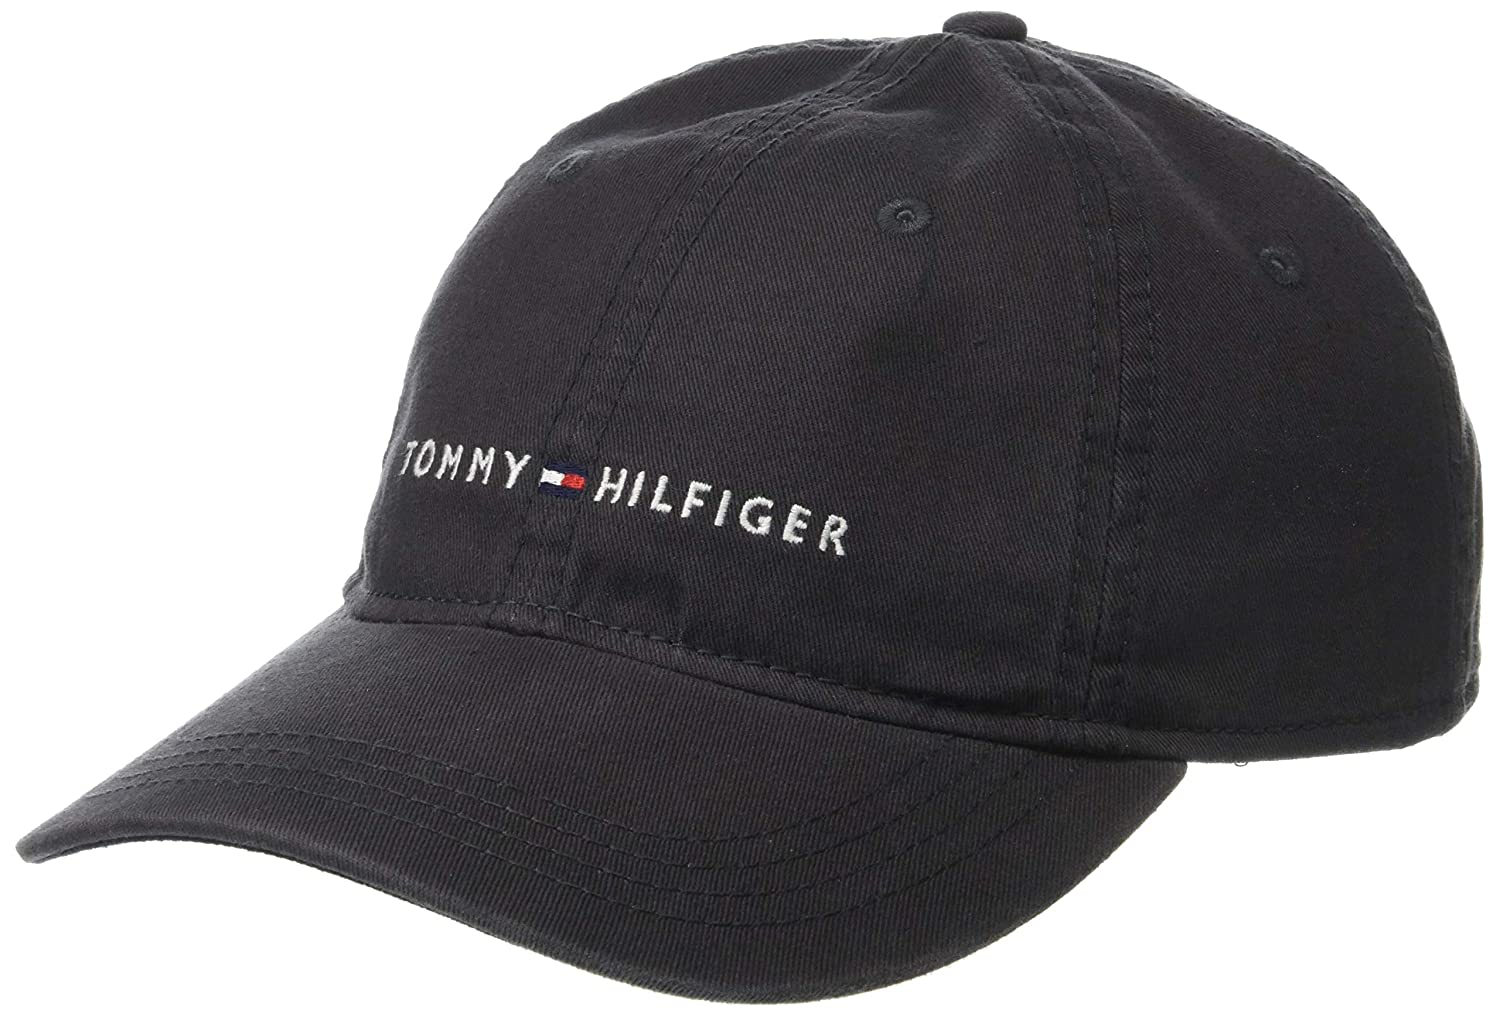 6f8ad0df Tommy Hilfiger Men's Logo Dad Baseball Cap, Charcoal, O/S at Amazon Men's  Clothing store: